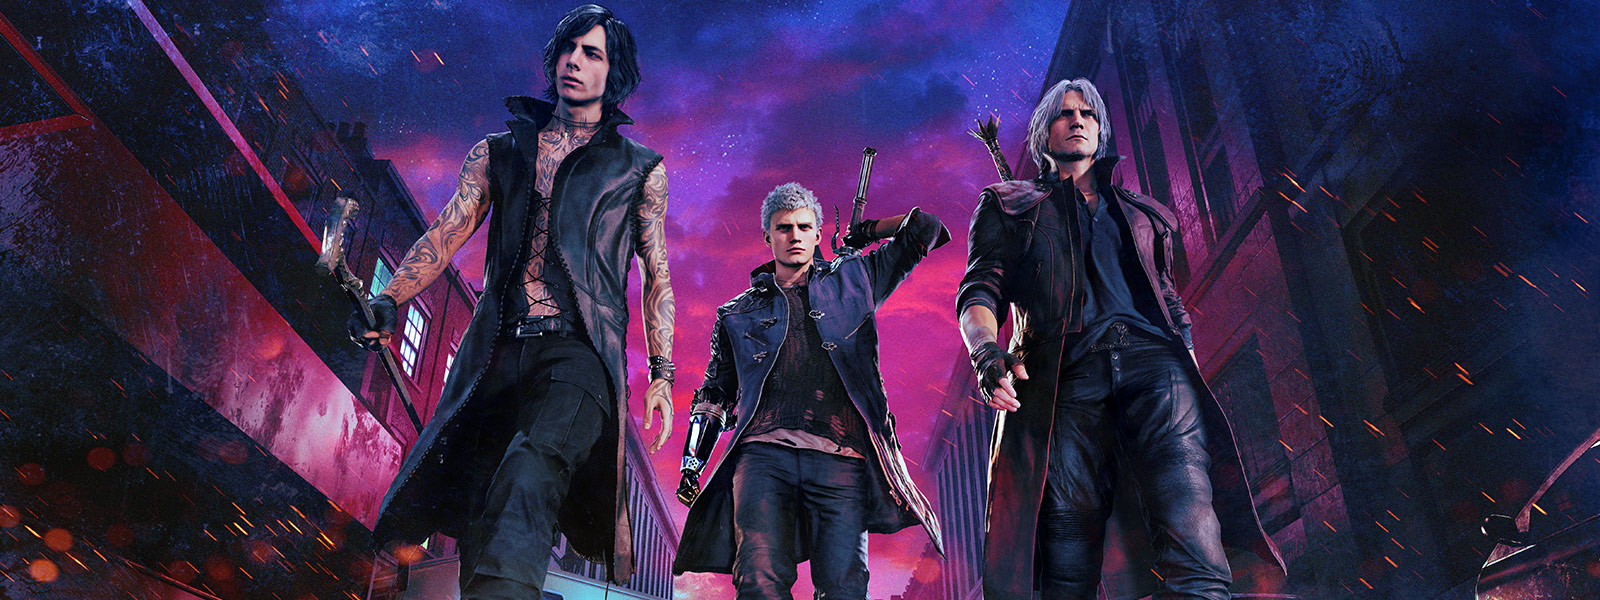 Front view of the 3 main character from Devil May Cry with one pulling out a sword